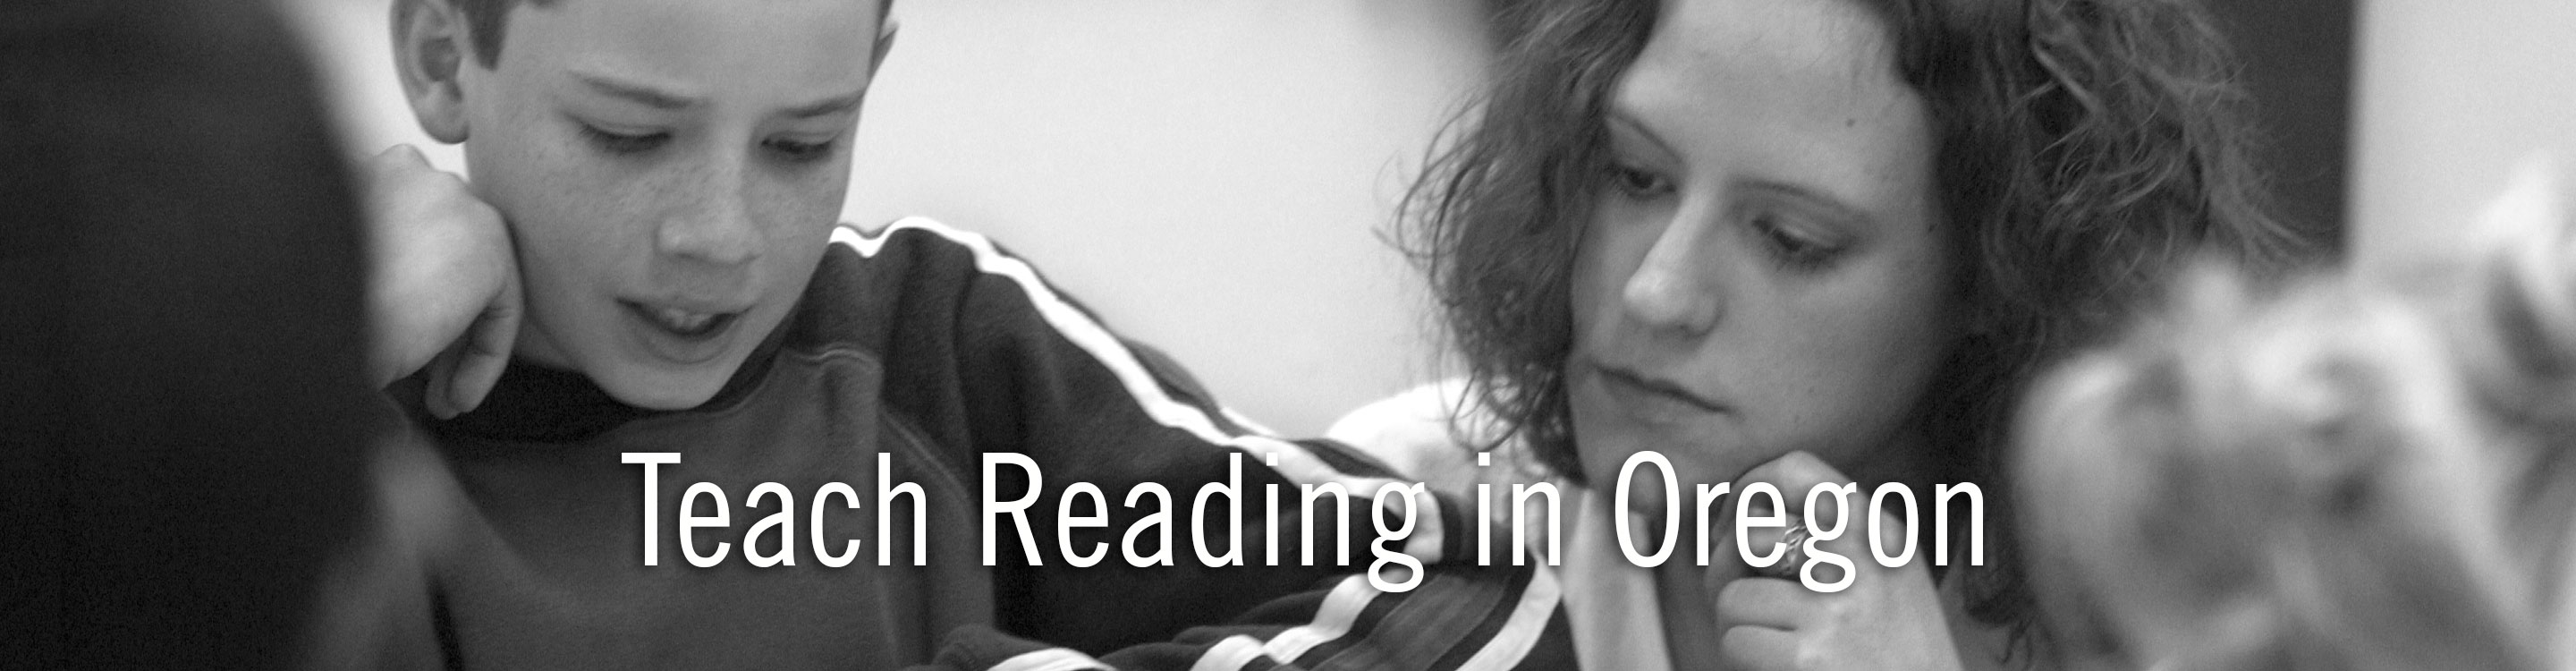 Teach Reading In Oregon Requirements To Become A Reading Teacher